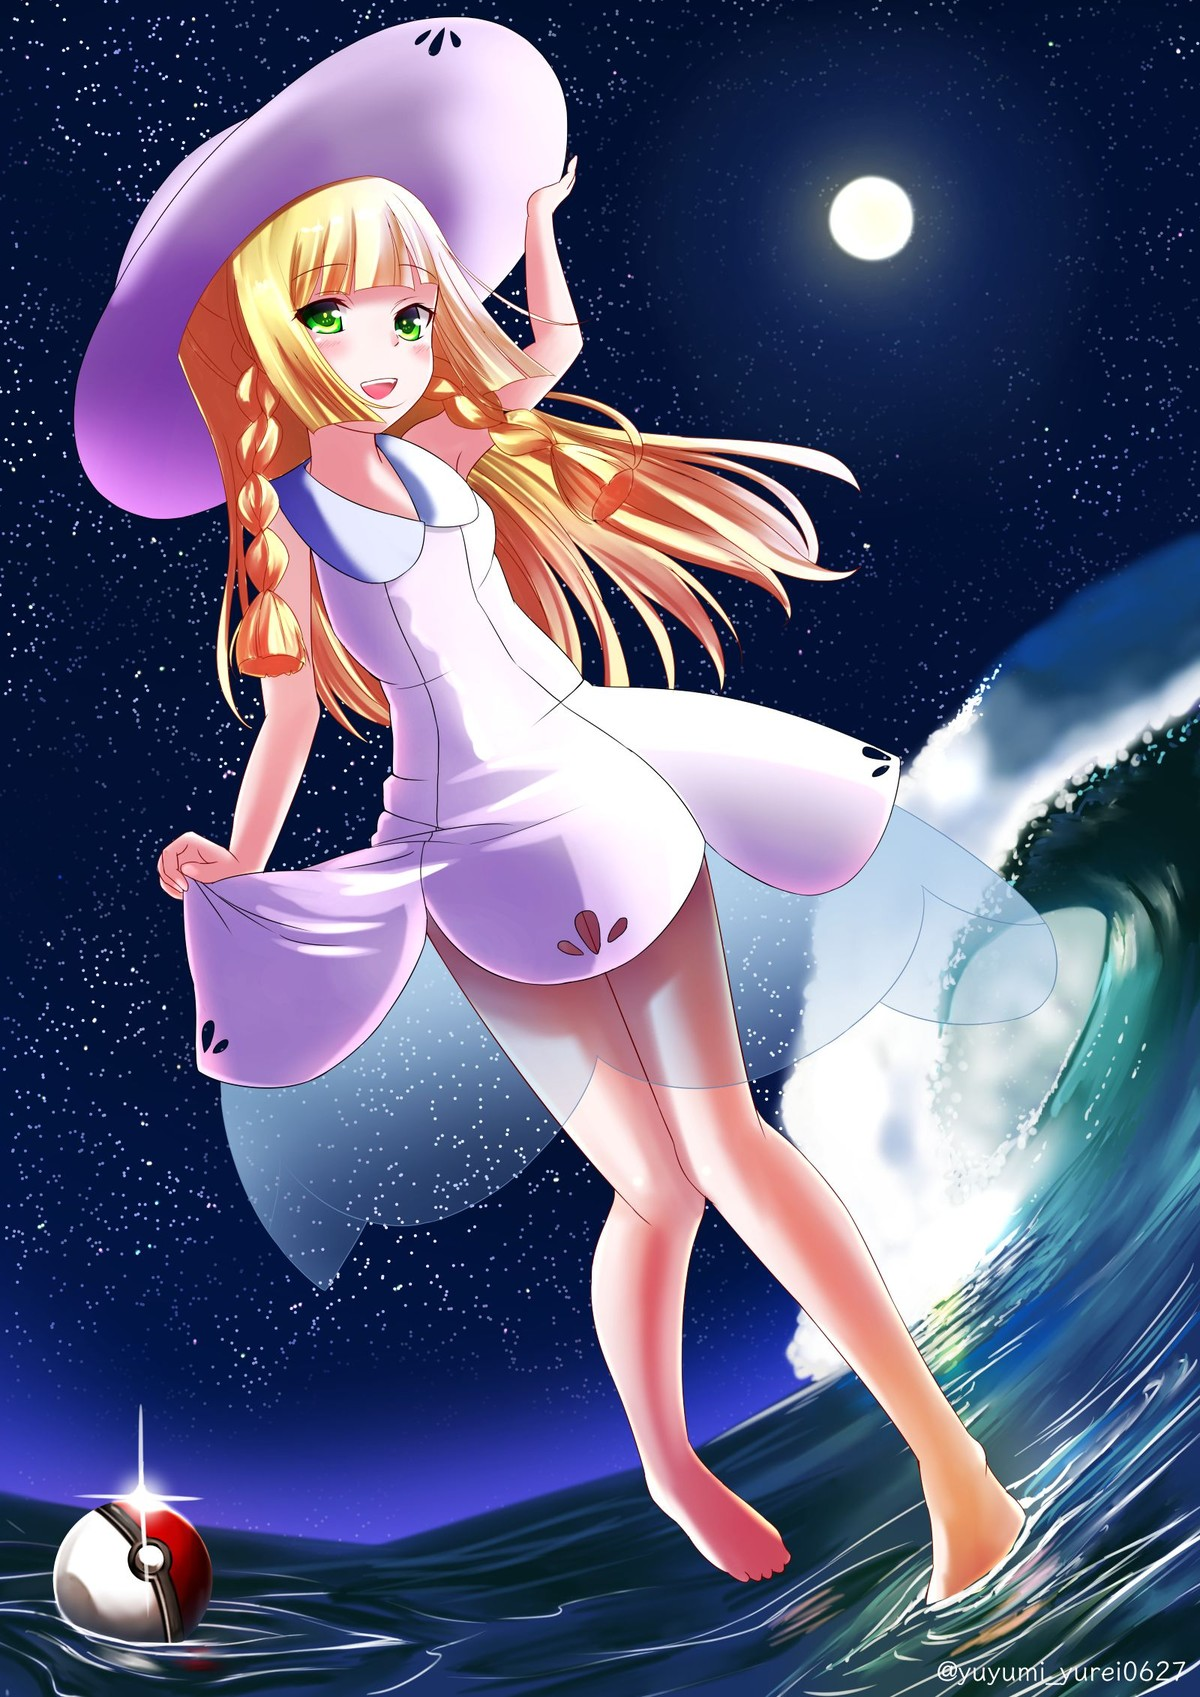 lillie_(pokemon)031